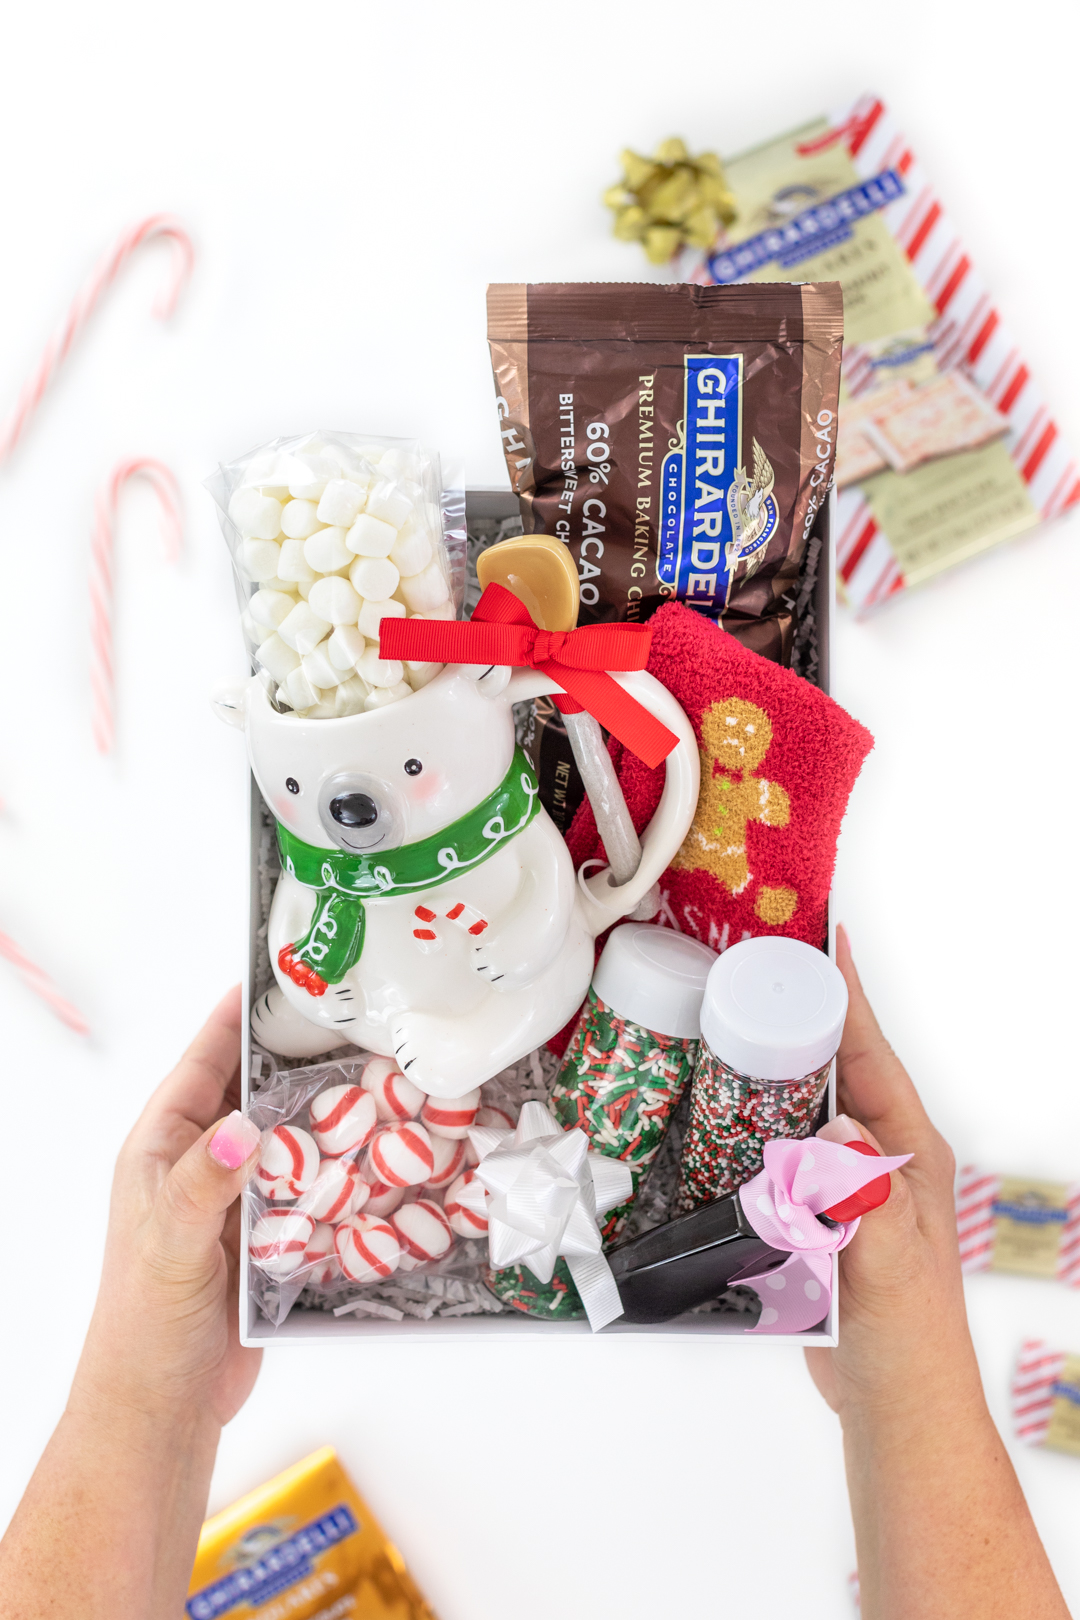 diy hot chocolate gift box with chocolate chips, mini marshmallows, sprinkles, vanilla and a cute polar bear mug